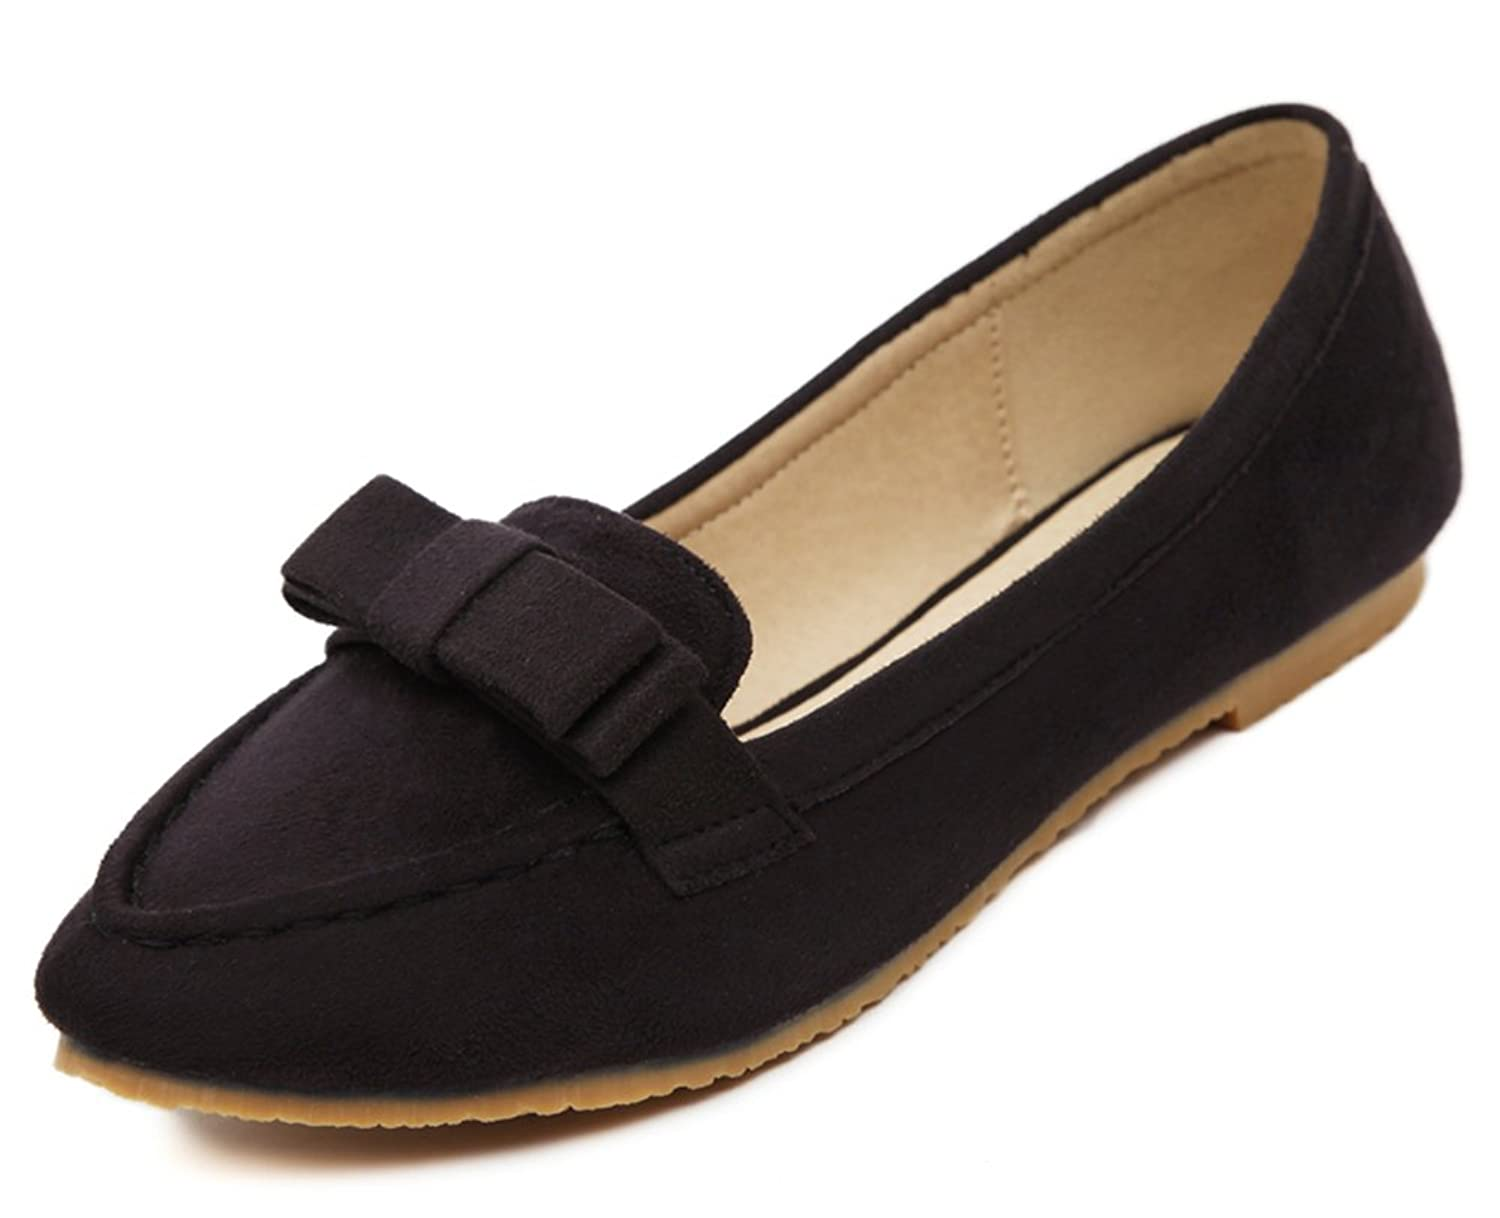 Aisun Women's Simple Sweet Bowknot Low Cut Loafers